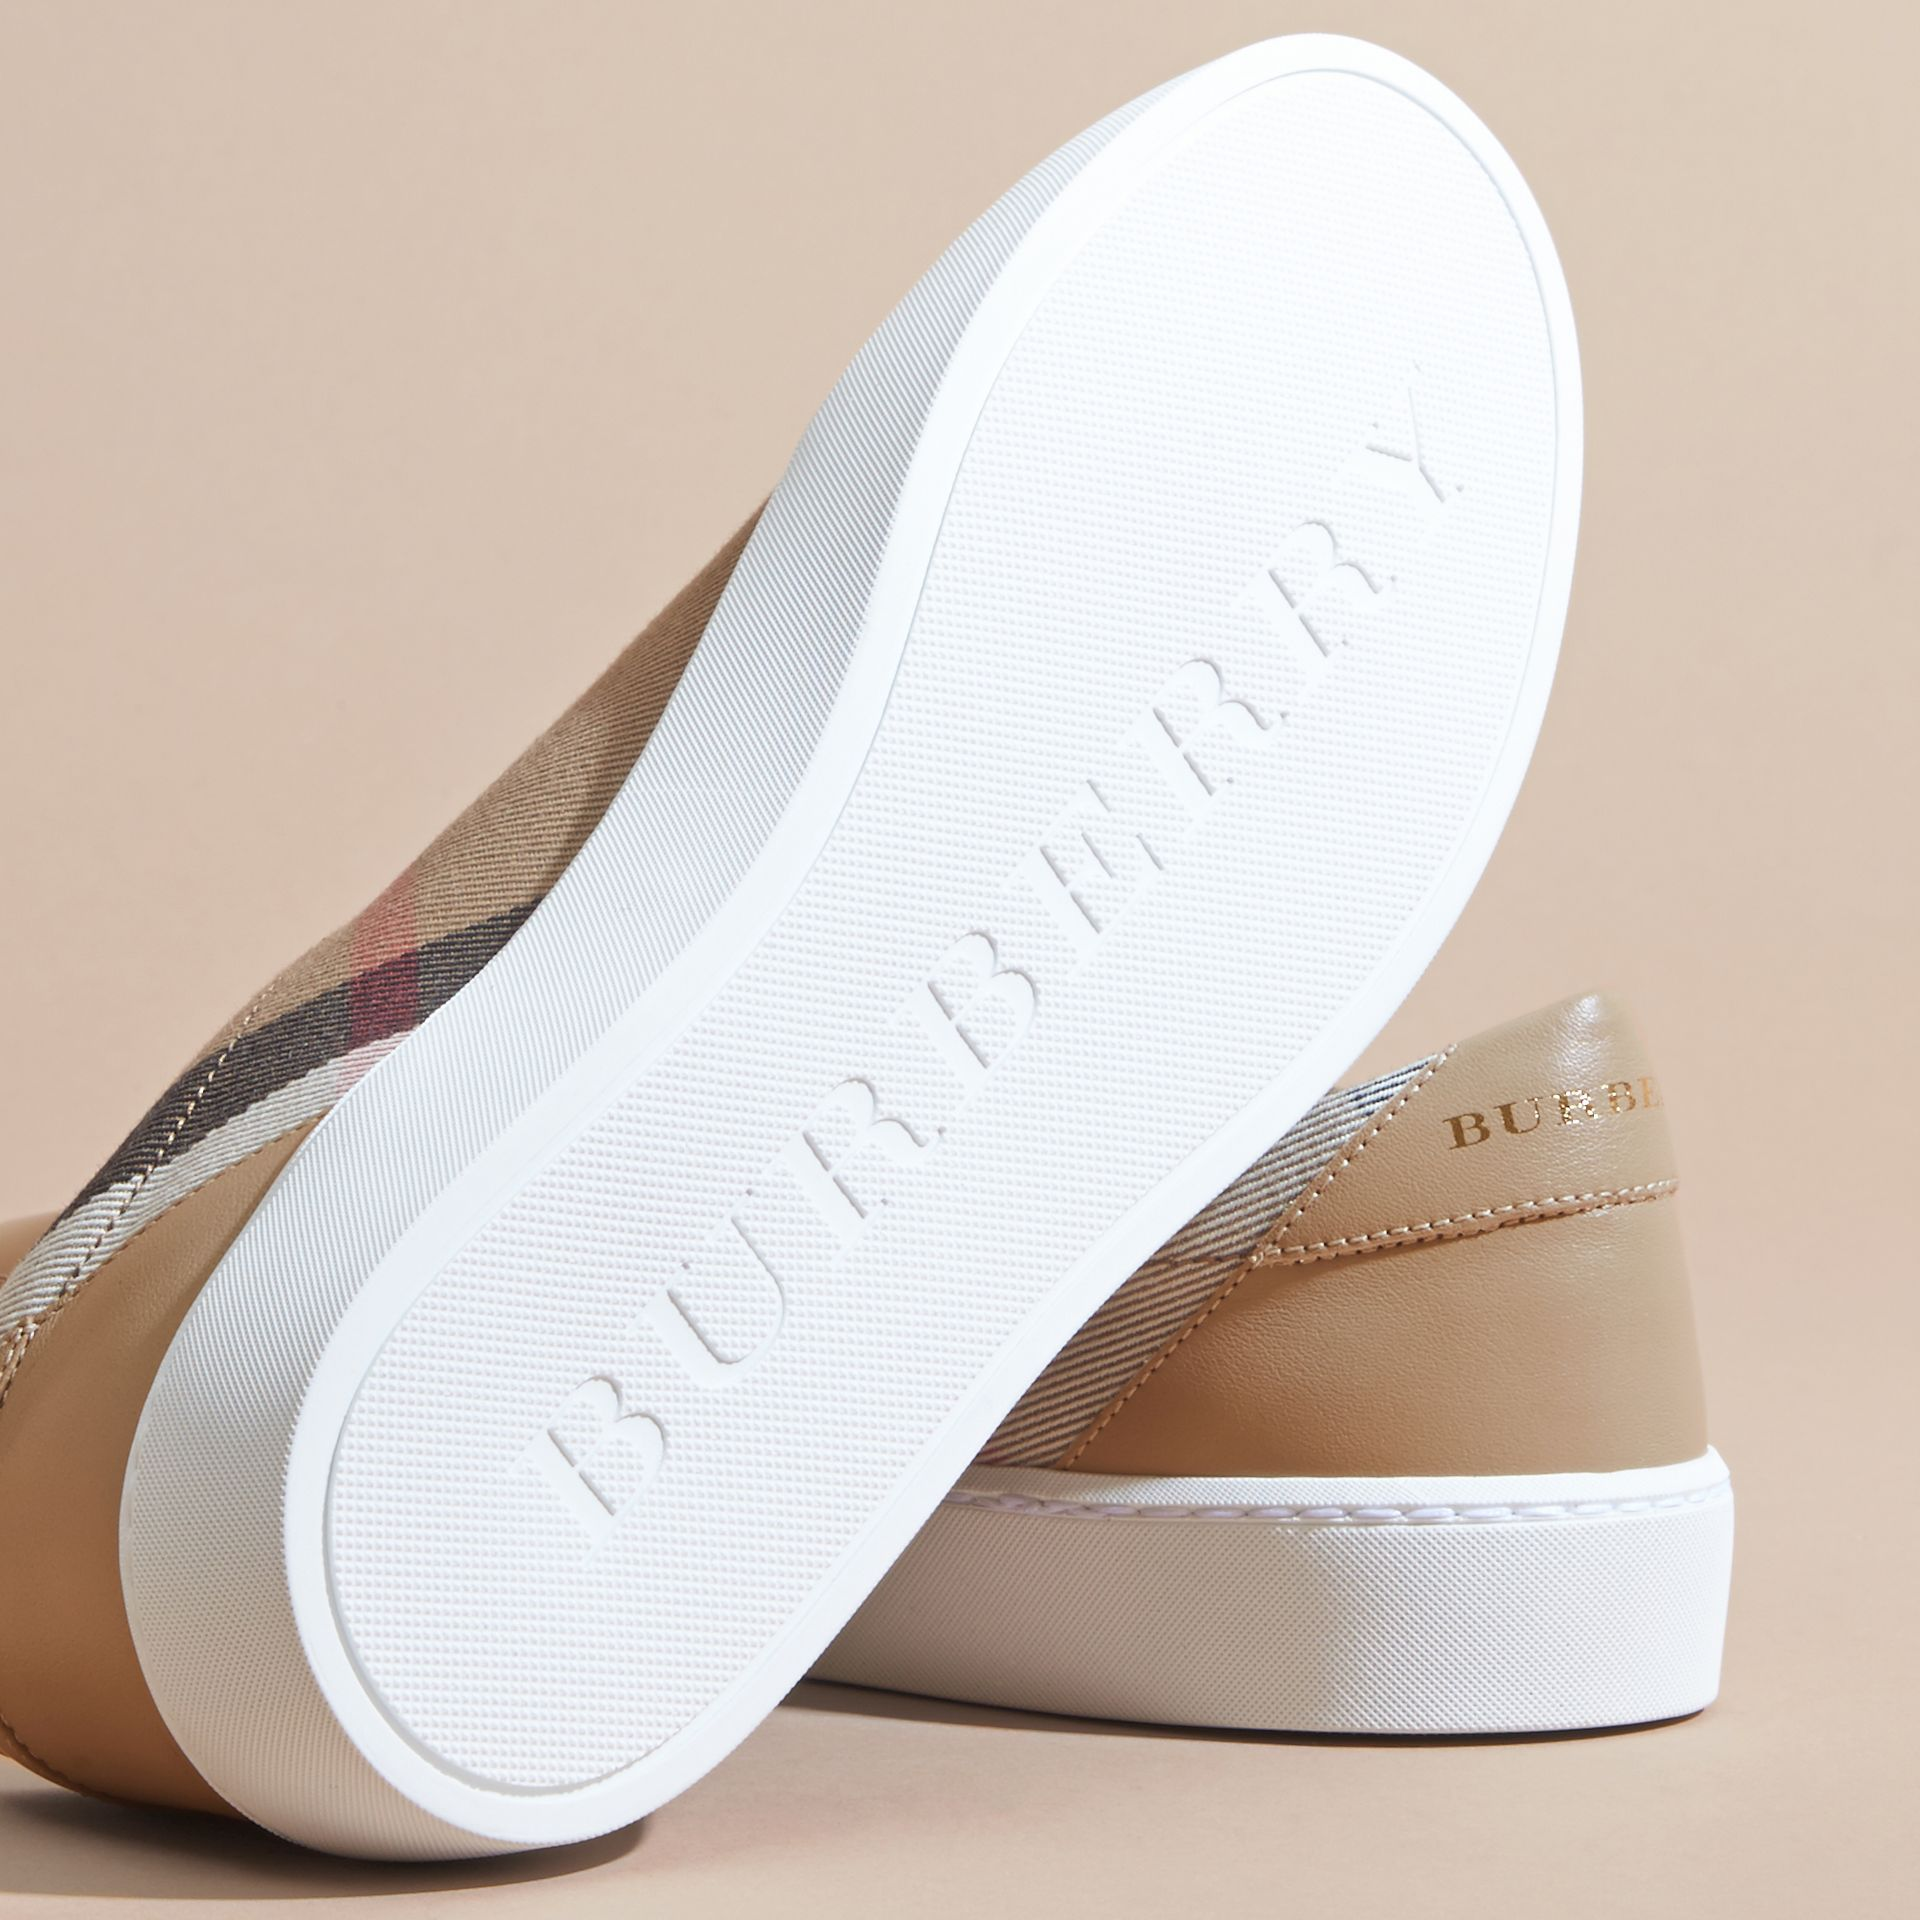 House check/ nude Check Detail Leather Sneakers House Check/ Nude - gallery image 5